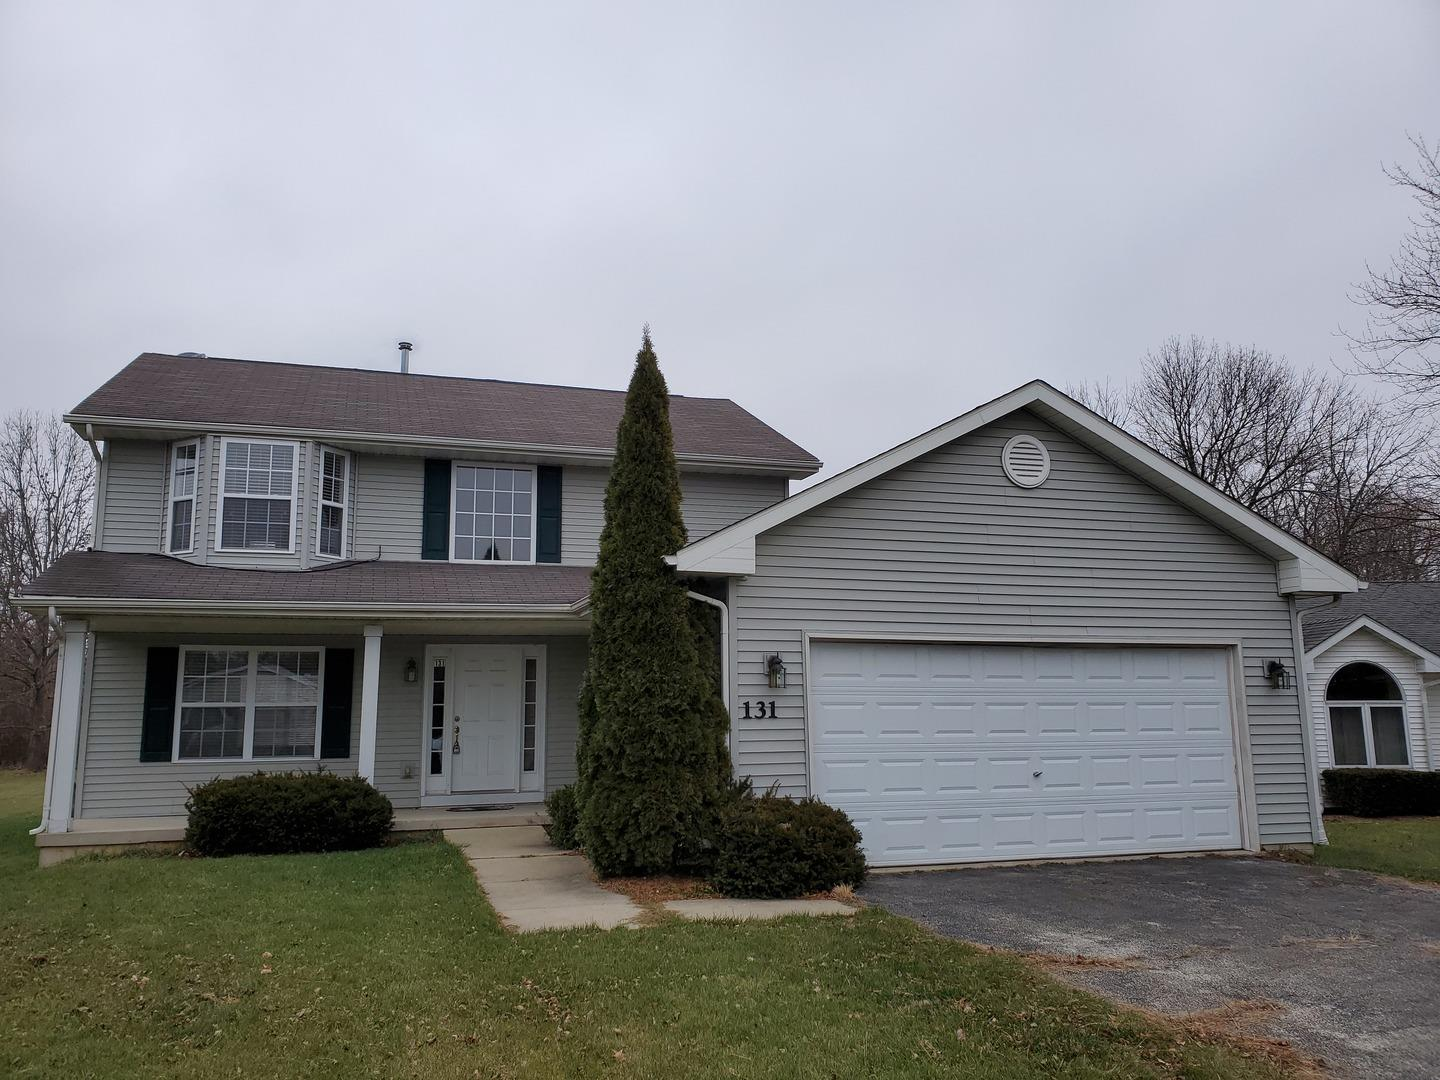 131 Lamplighter Loop SE, Poplar Grove, IL 61065 - #: 10953365